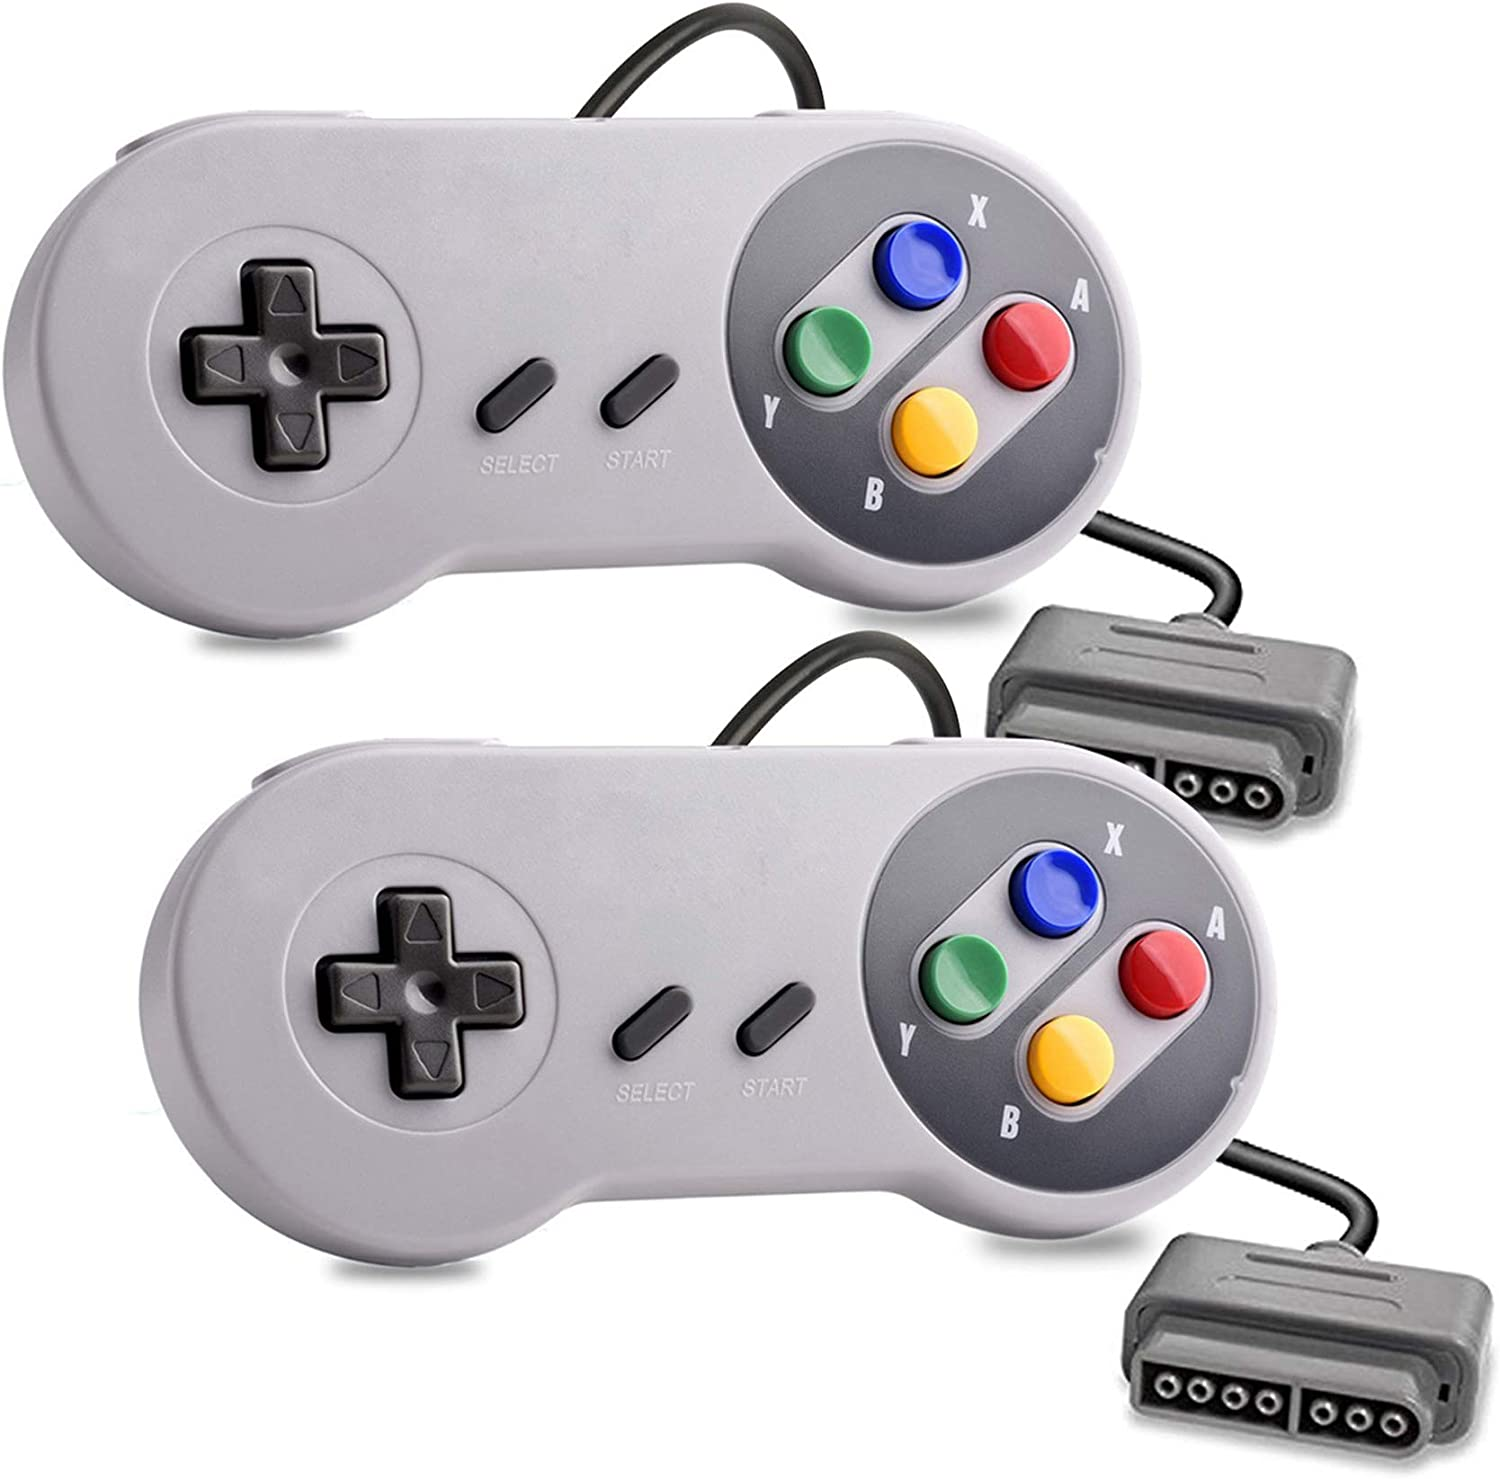 Veanic 2-Pack Replacement Controller Gamepad for Original - Sale item Discount is also underway SNES